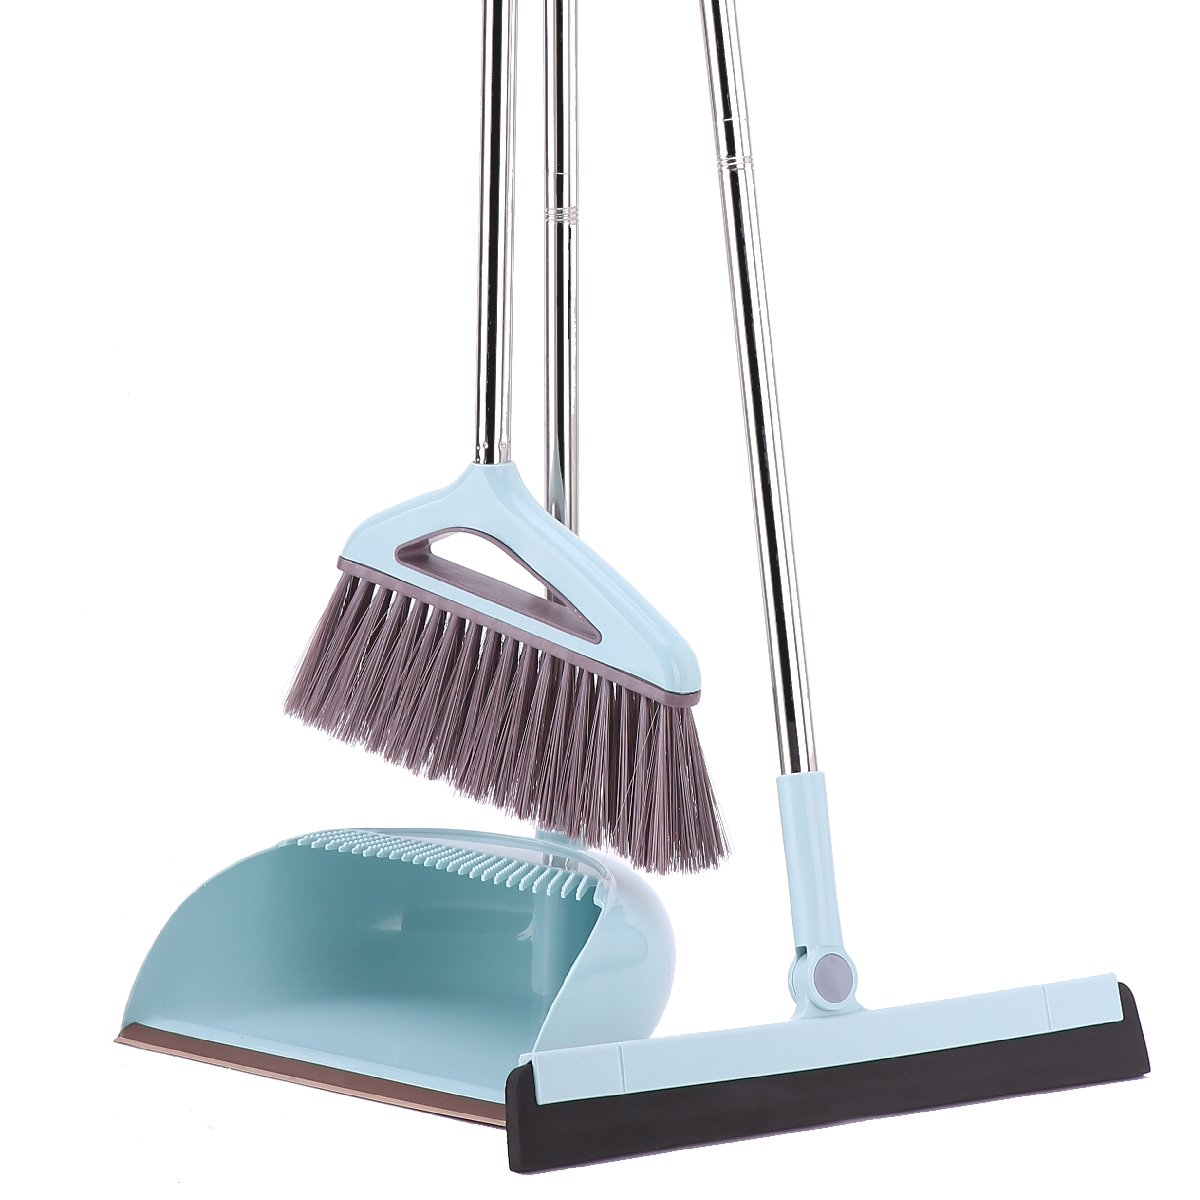 Dust Pan Broom & Floor Squeegee Scrubber Brush/Removable Adjustable Long Handle/Cleaner Set Professional for Pet Hair Sweeping Kitchen House